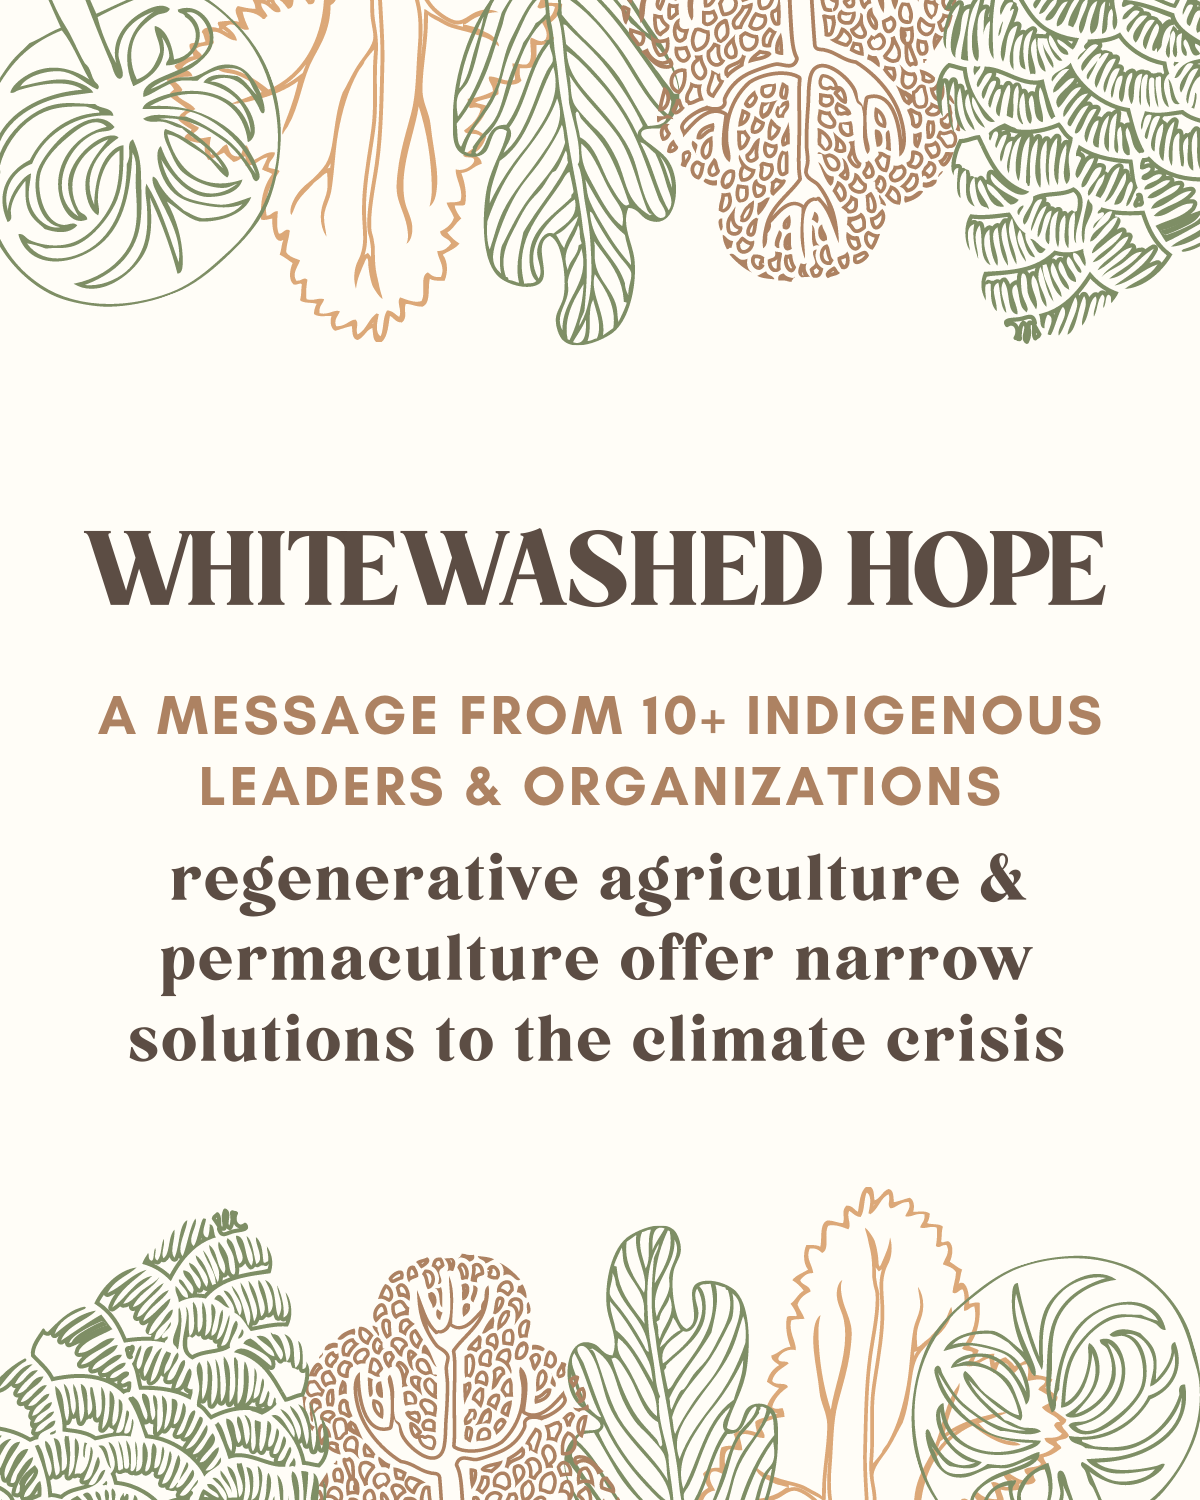 Whitewashed Hope